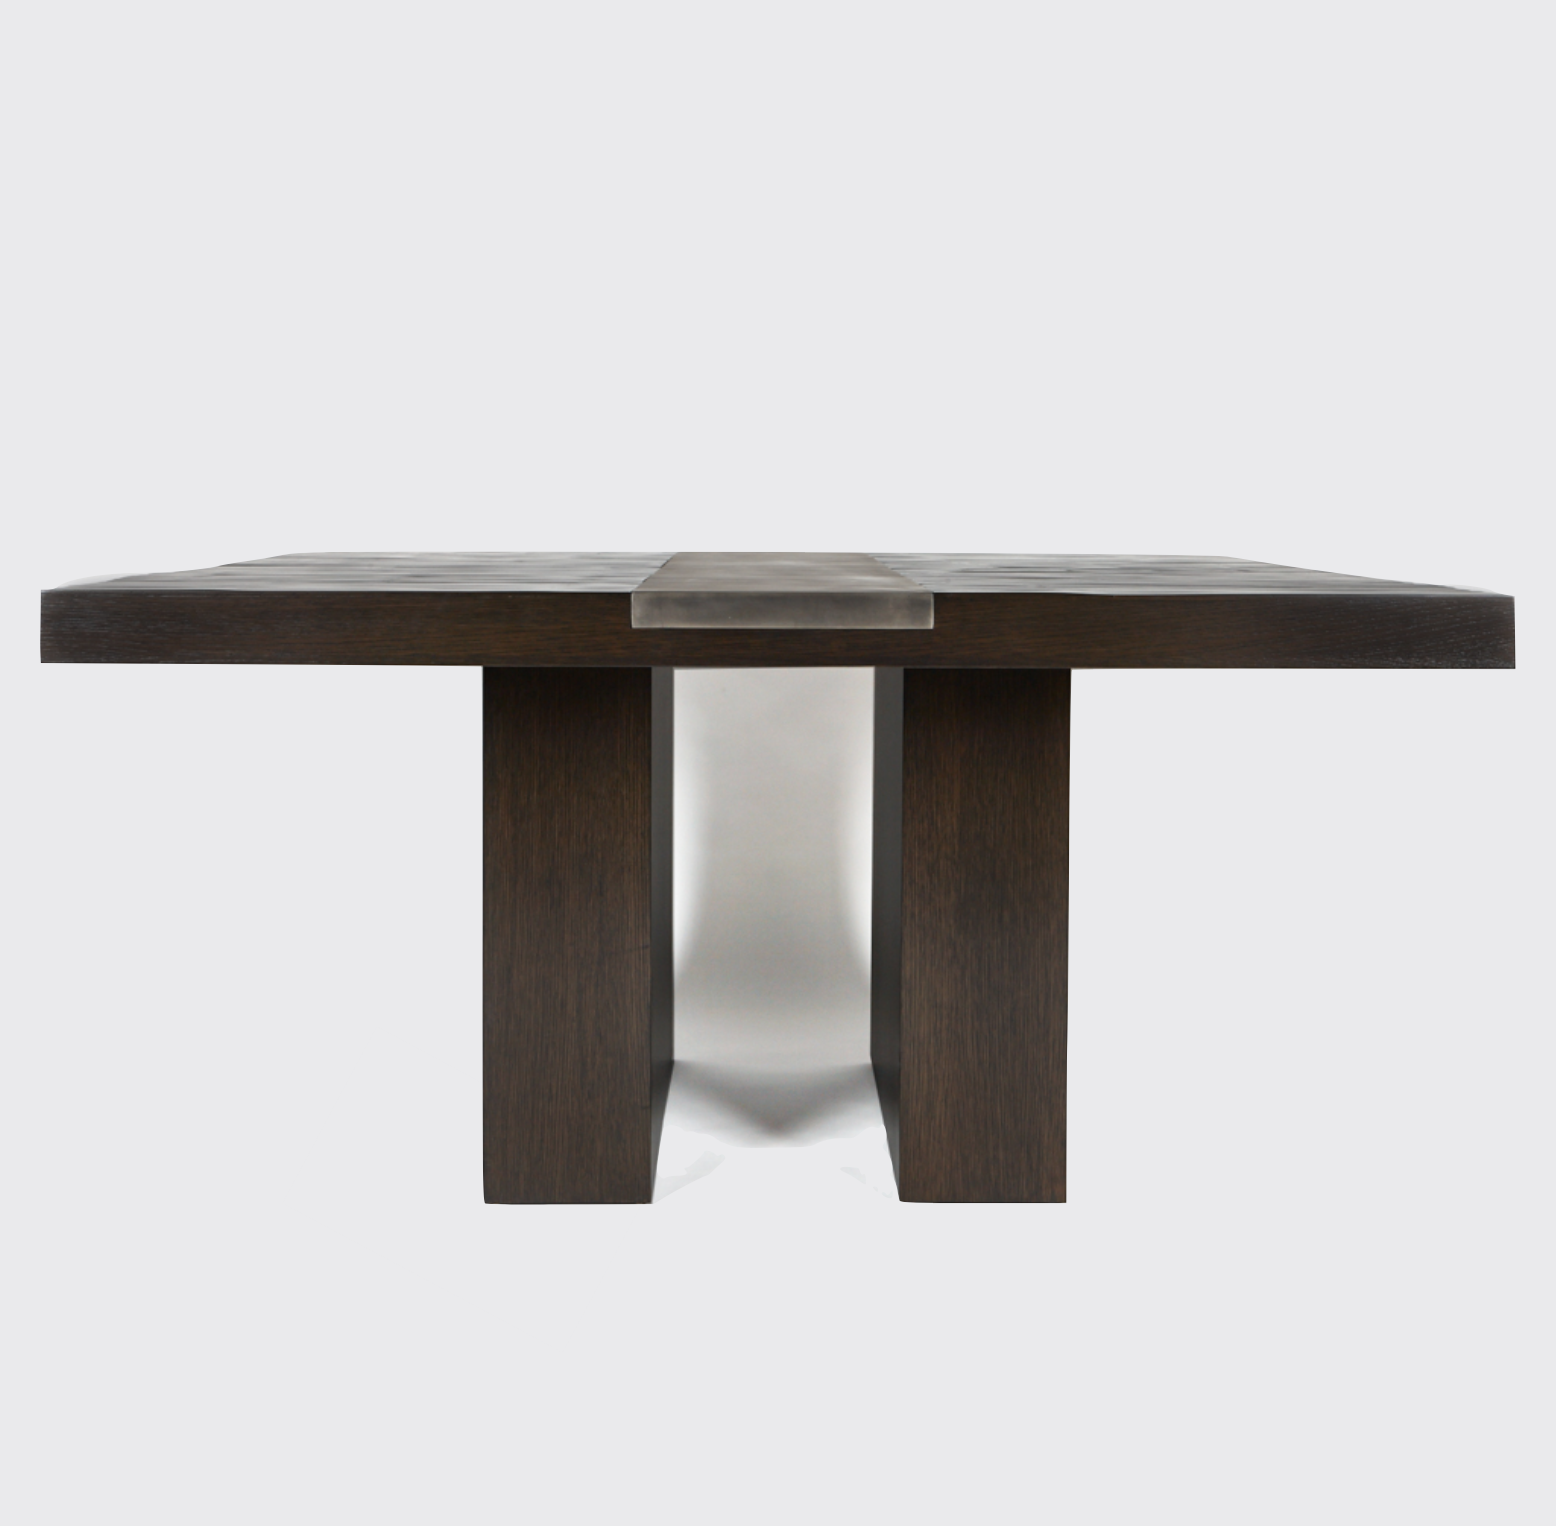 Aguirre Design - Bamboo, Blackened Steel and Oak Square Dining Table